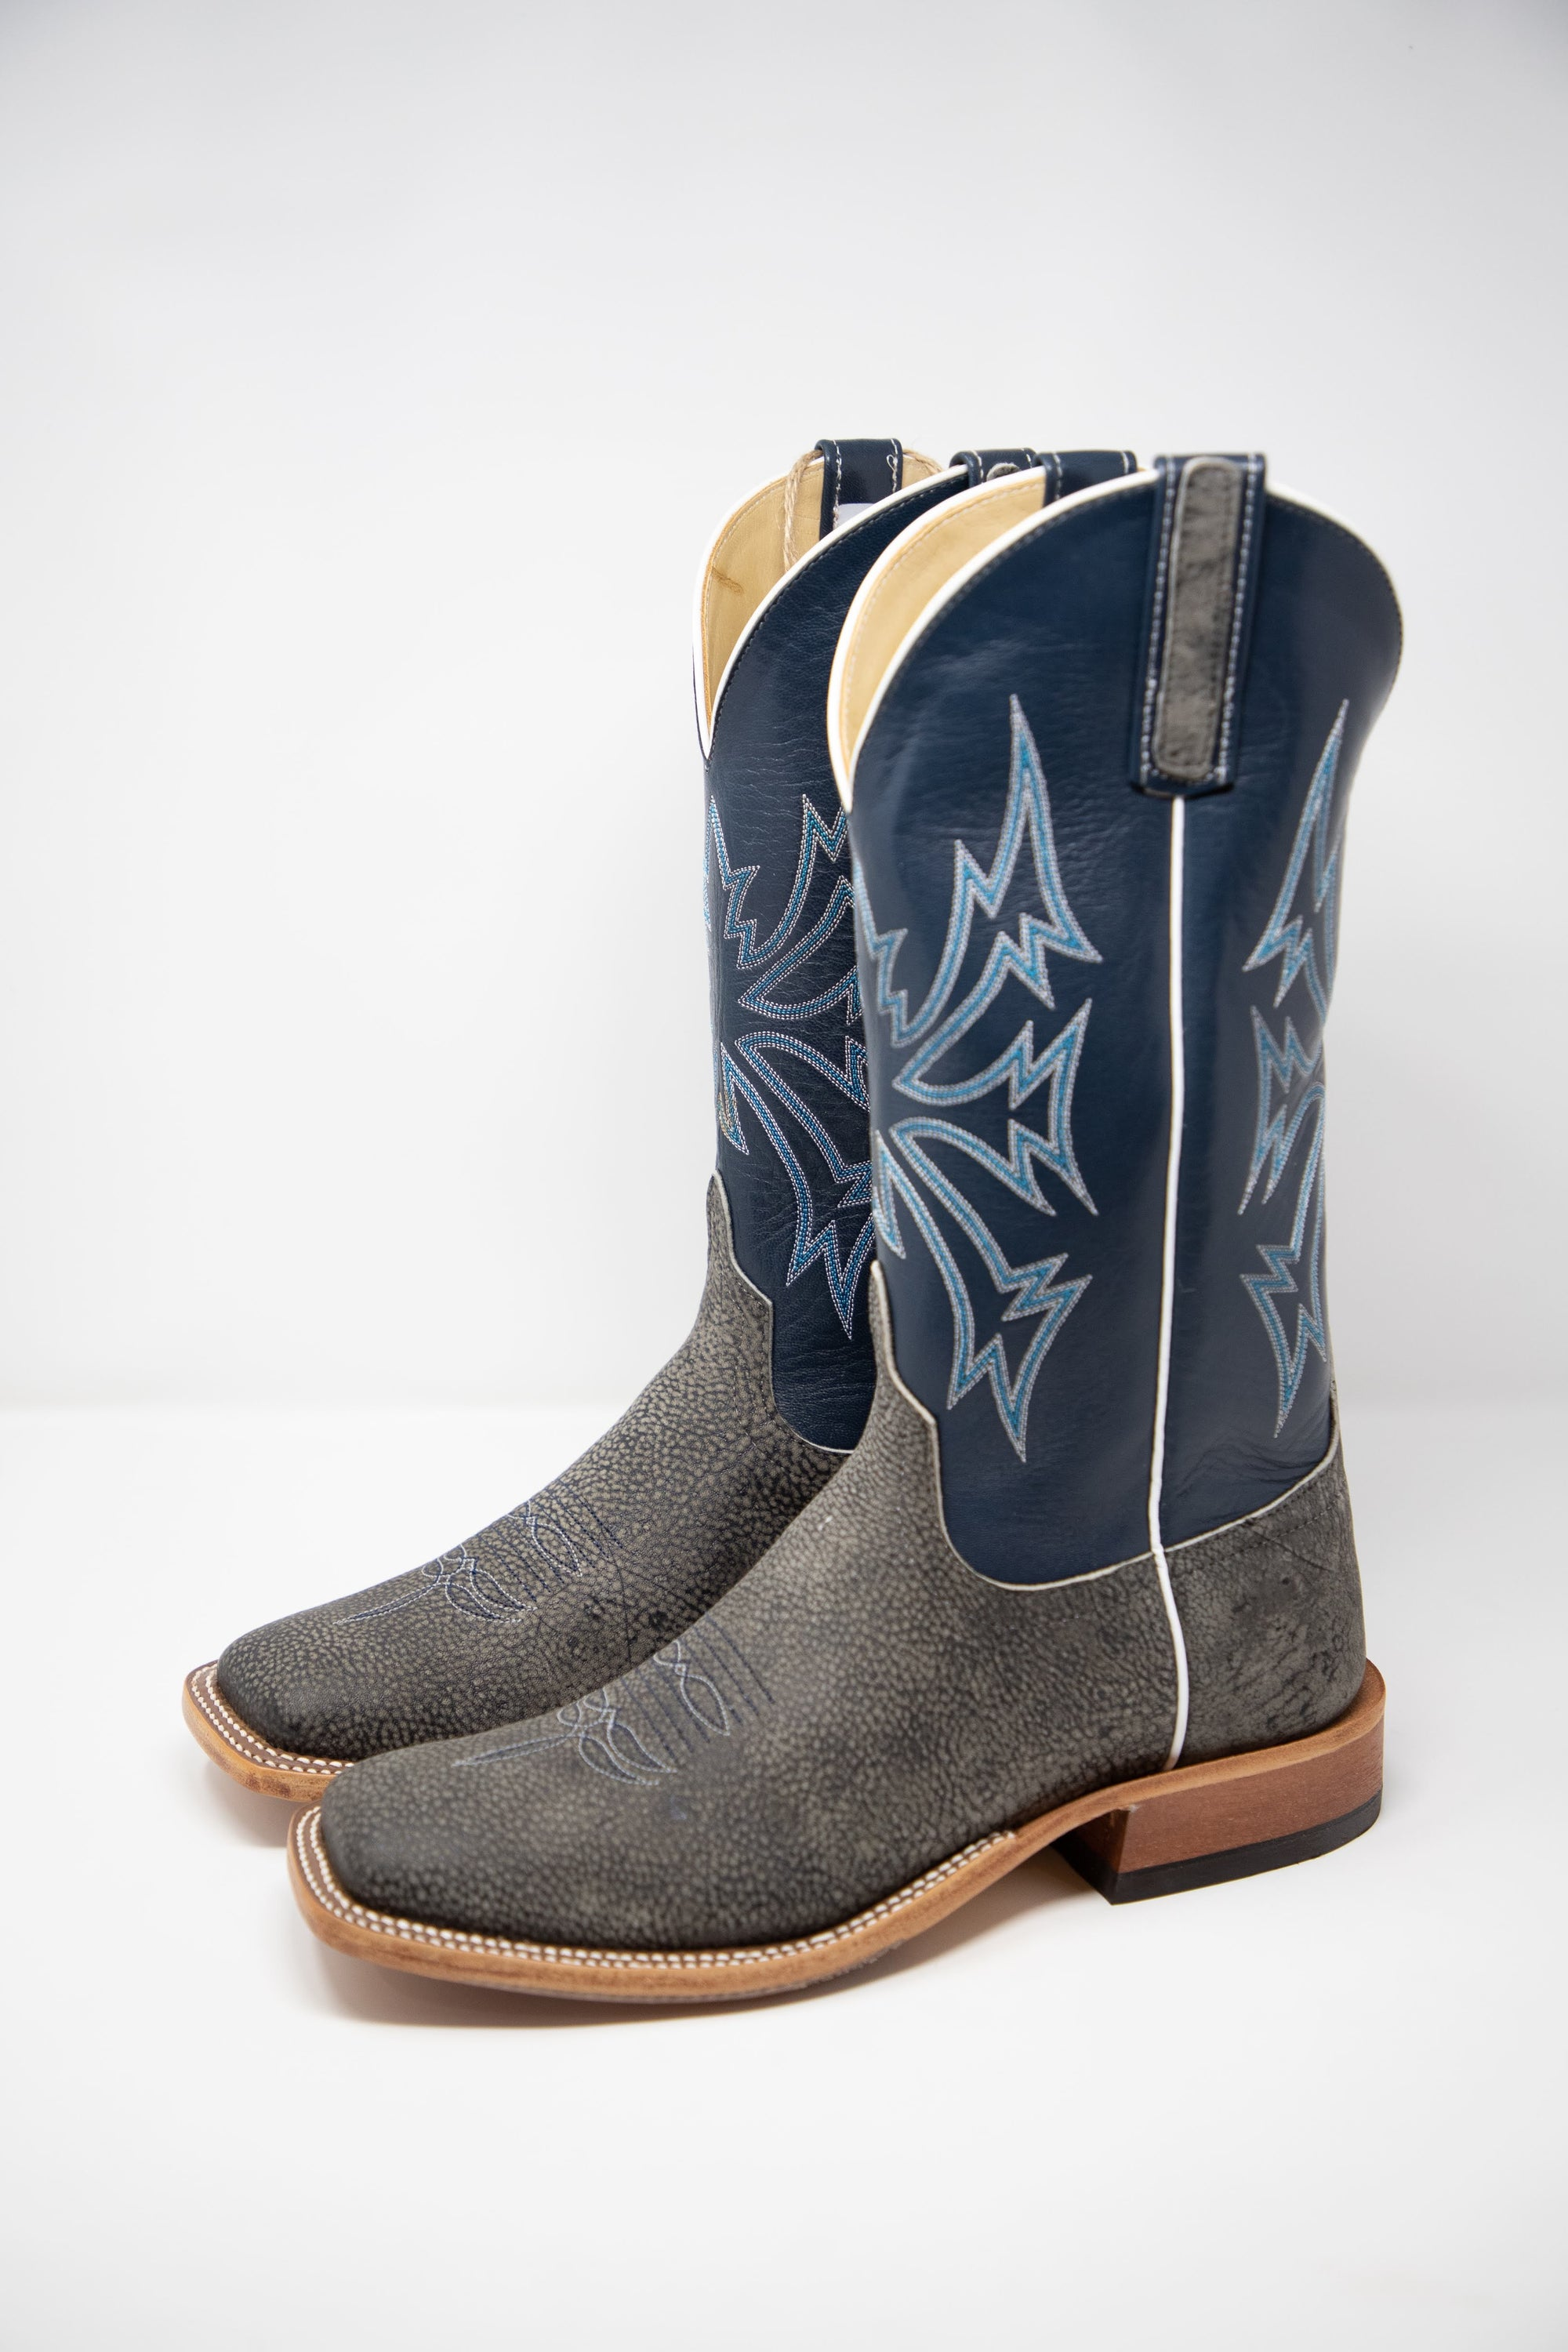 Anderson Bean Blue Giraffe and Kidskin Men's Boot